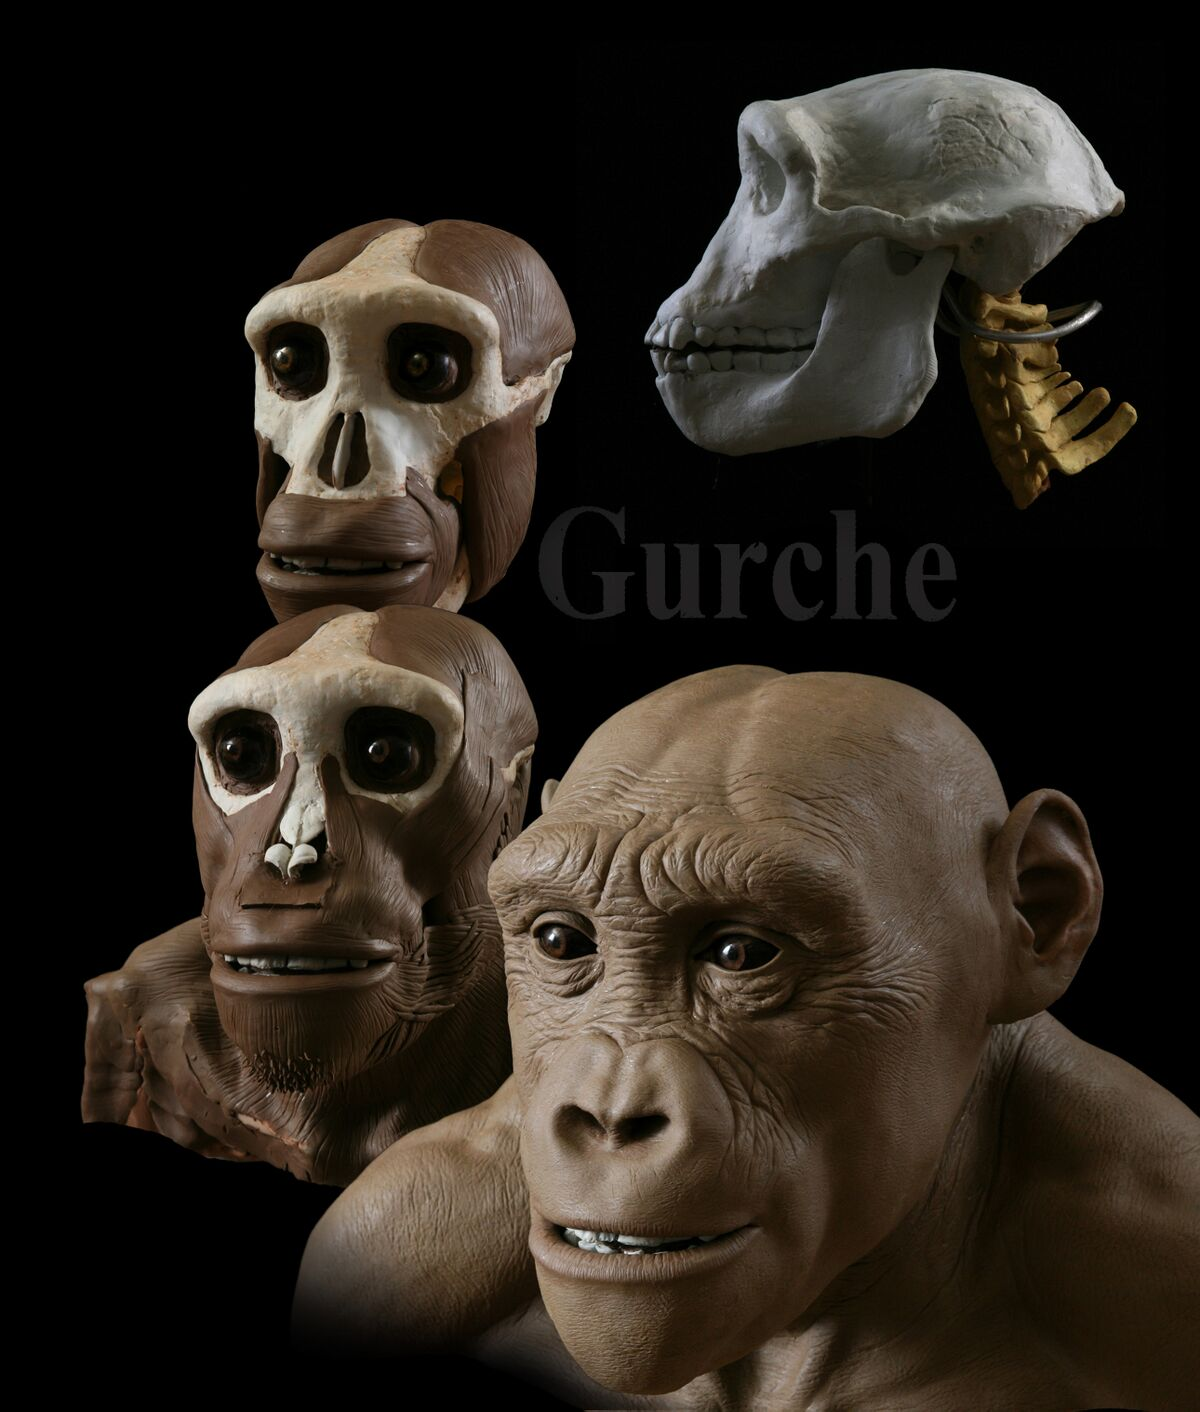 The stages of the Sahelanthropus reconstruction